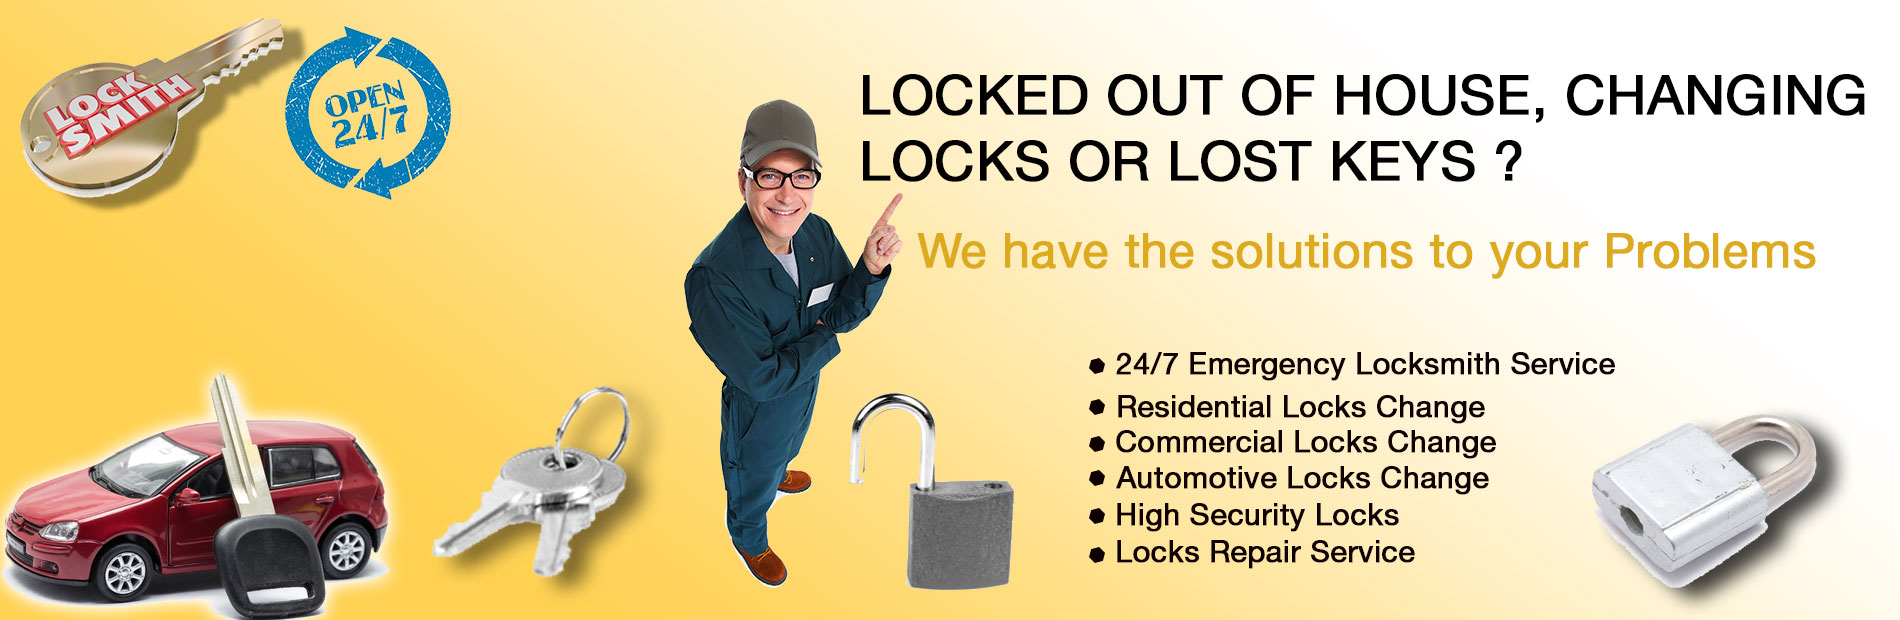 Atlanta Local 24 Hr Locksmith Atlanta, GA 404-965-1115